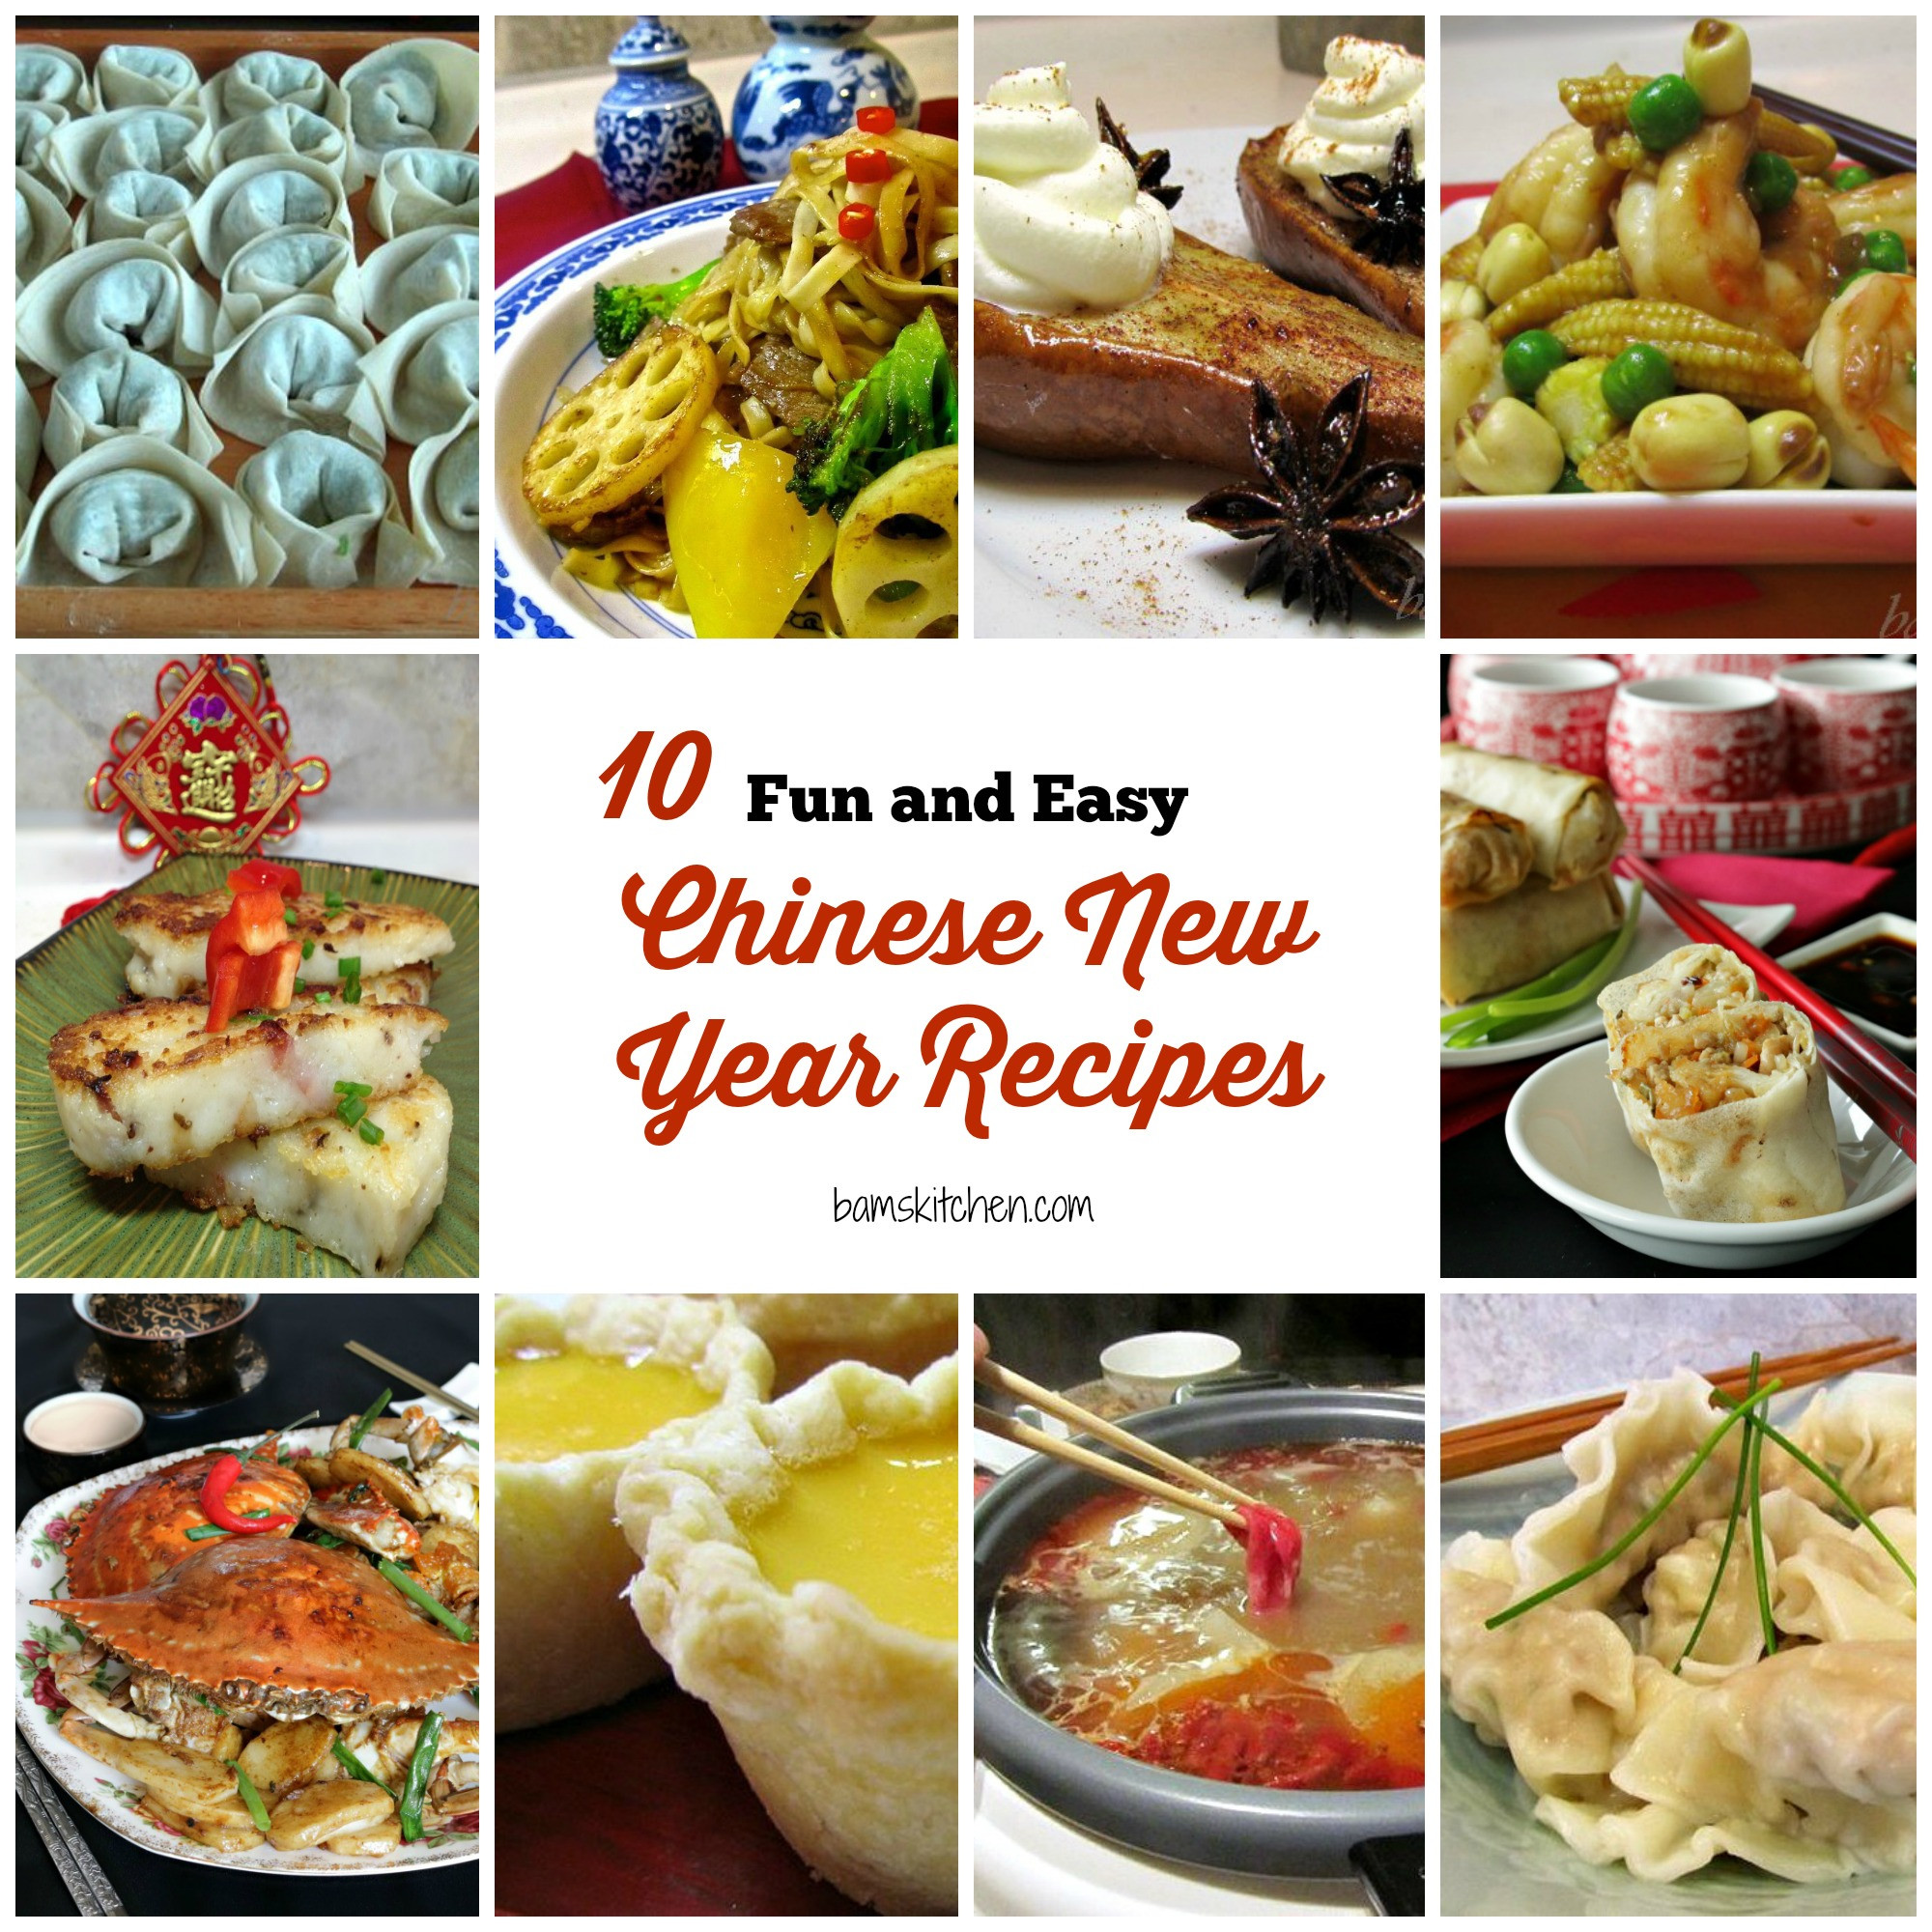 Chinese New Year Foods Recipes  10 Fun and Easy Chinese New Year Recipes Healthy World